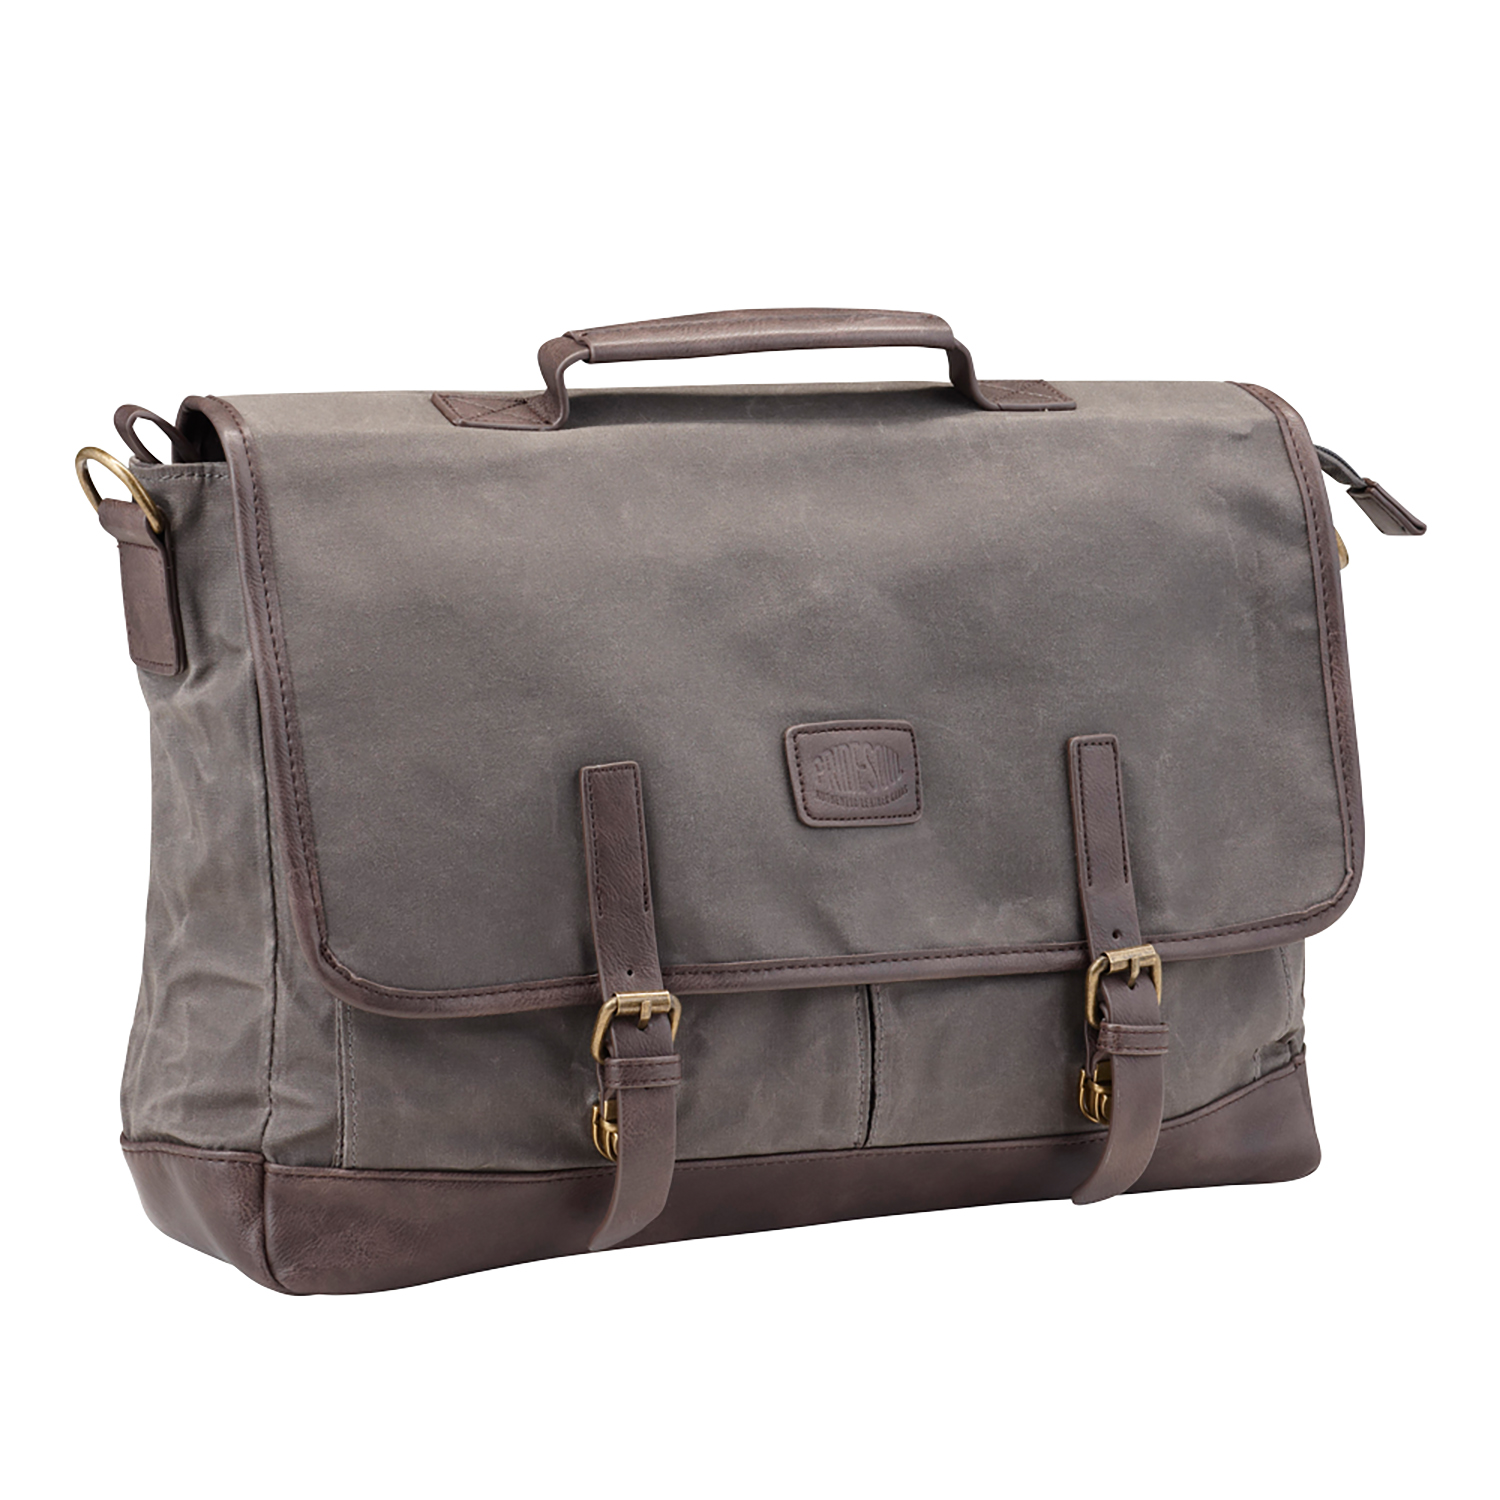 Bags & Cases Pride and Soul Vegas 15inch Laptop Briefcase Grey/Brown Ref 47303